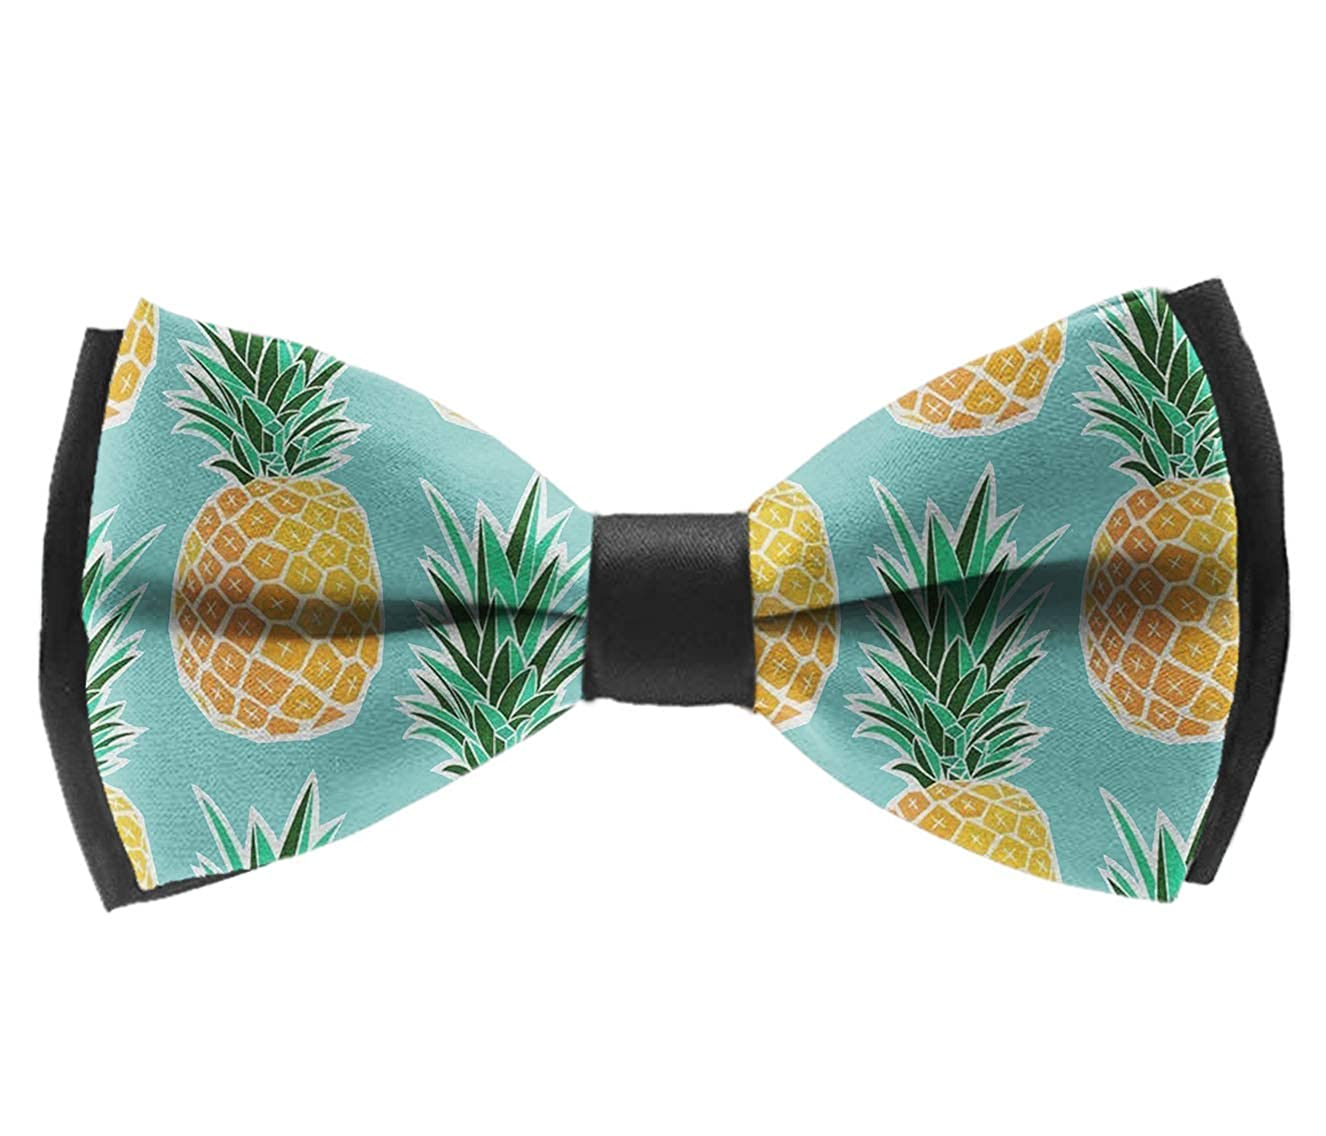 Bow Tie for Men Tuxedo /& Wedding Solid Color Tropical Pineapple